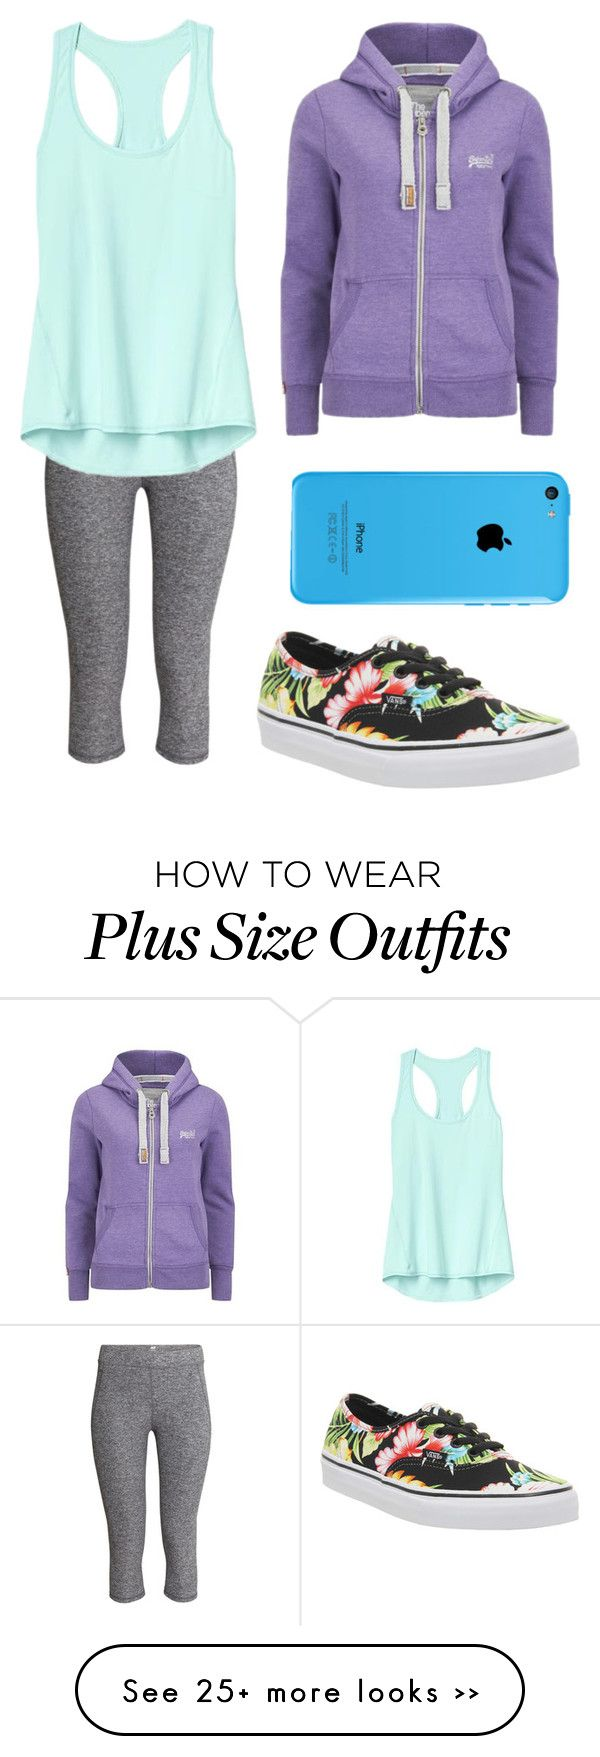 """""""Casual!"""" by madeleineunicorn on Polyvore featuring H&M, Athleta, Superdry and Vans"""